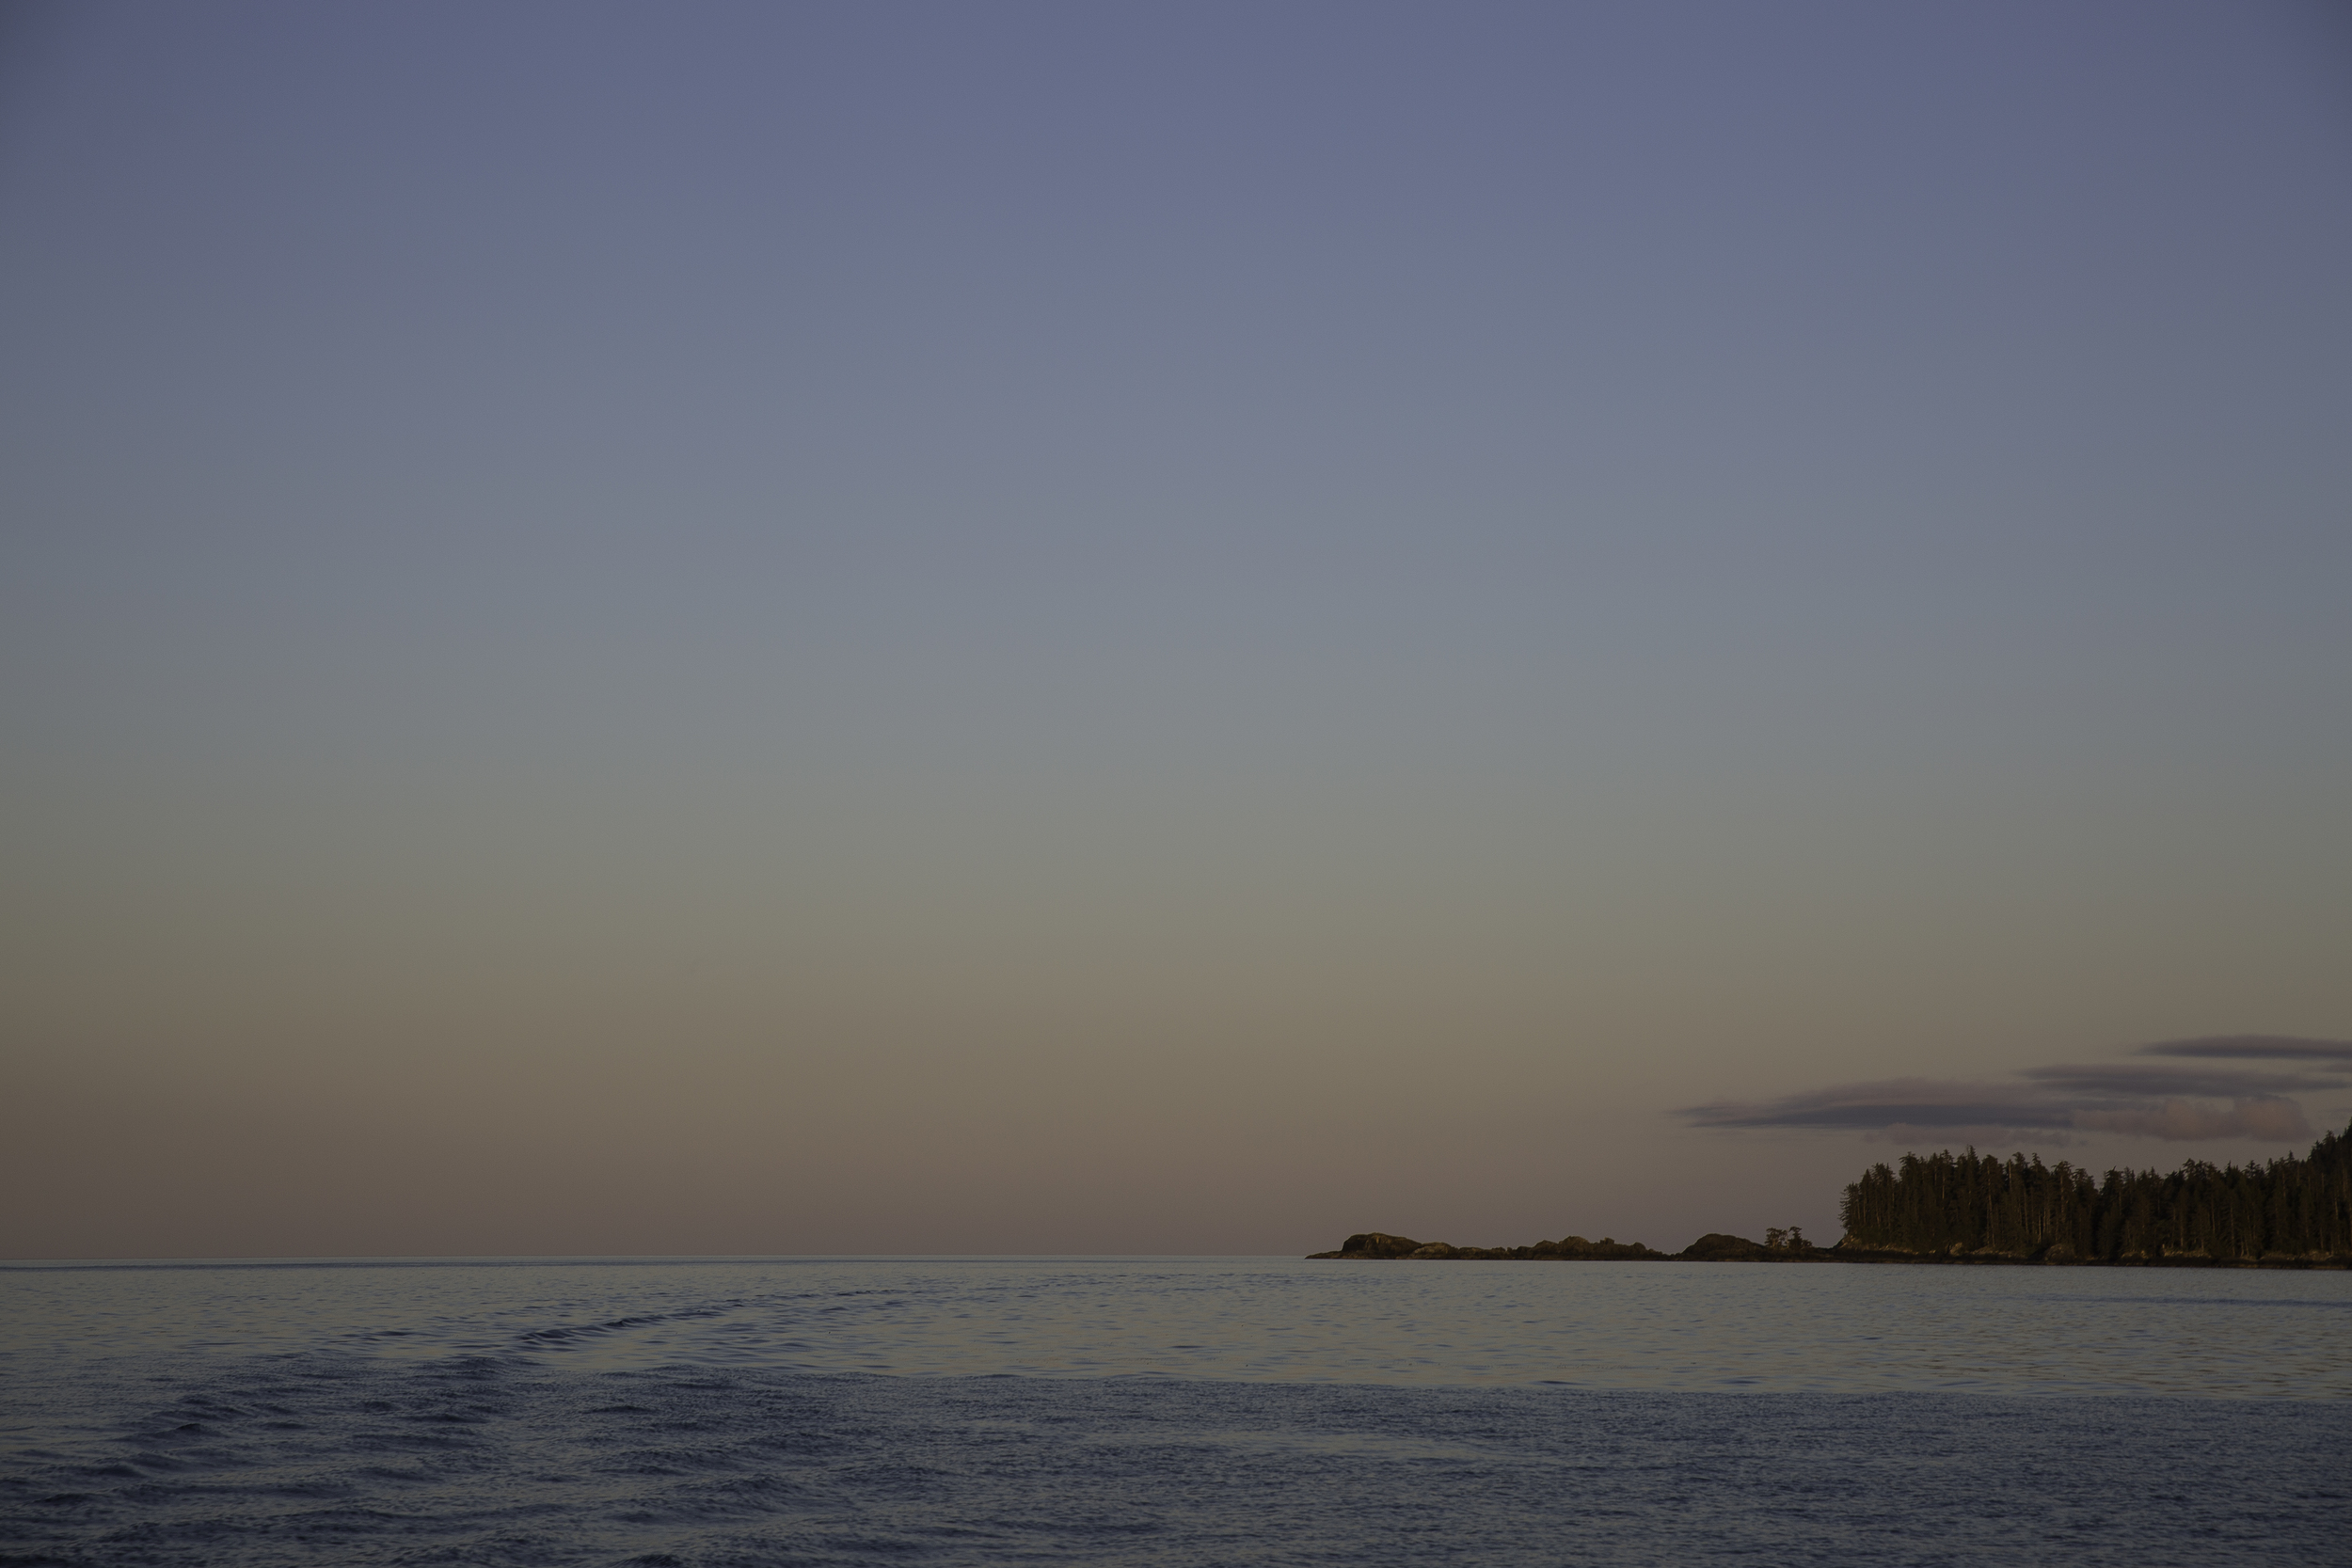 The stern wake fades off into the distance as the sunset turns the lights down and we round into Haida Gwaii.